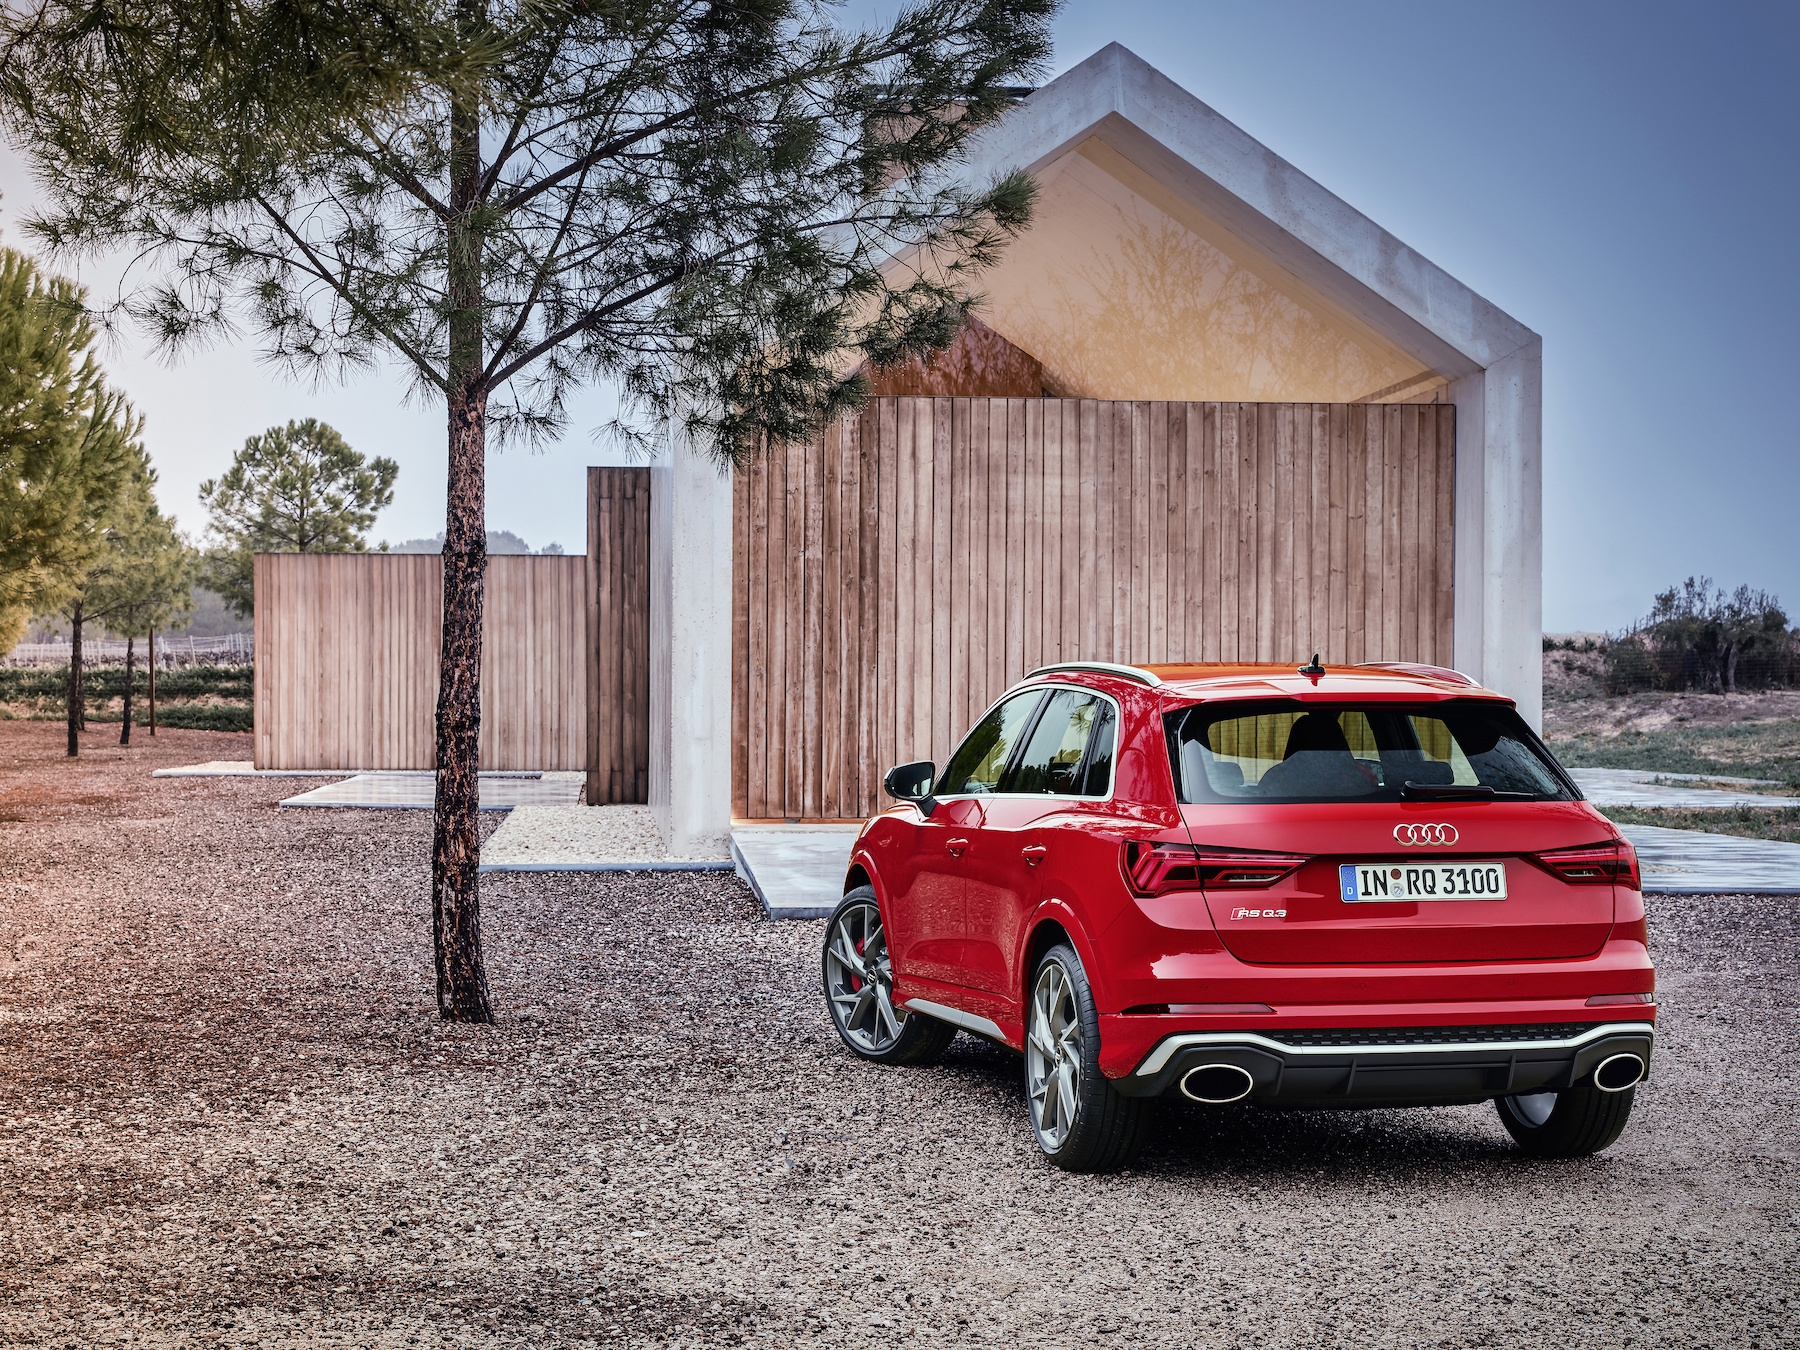 Audi performance RSQ3 SUV in red